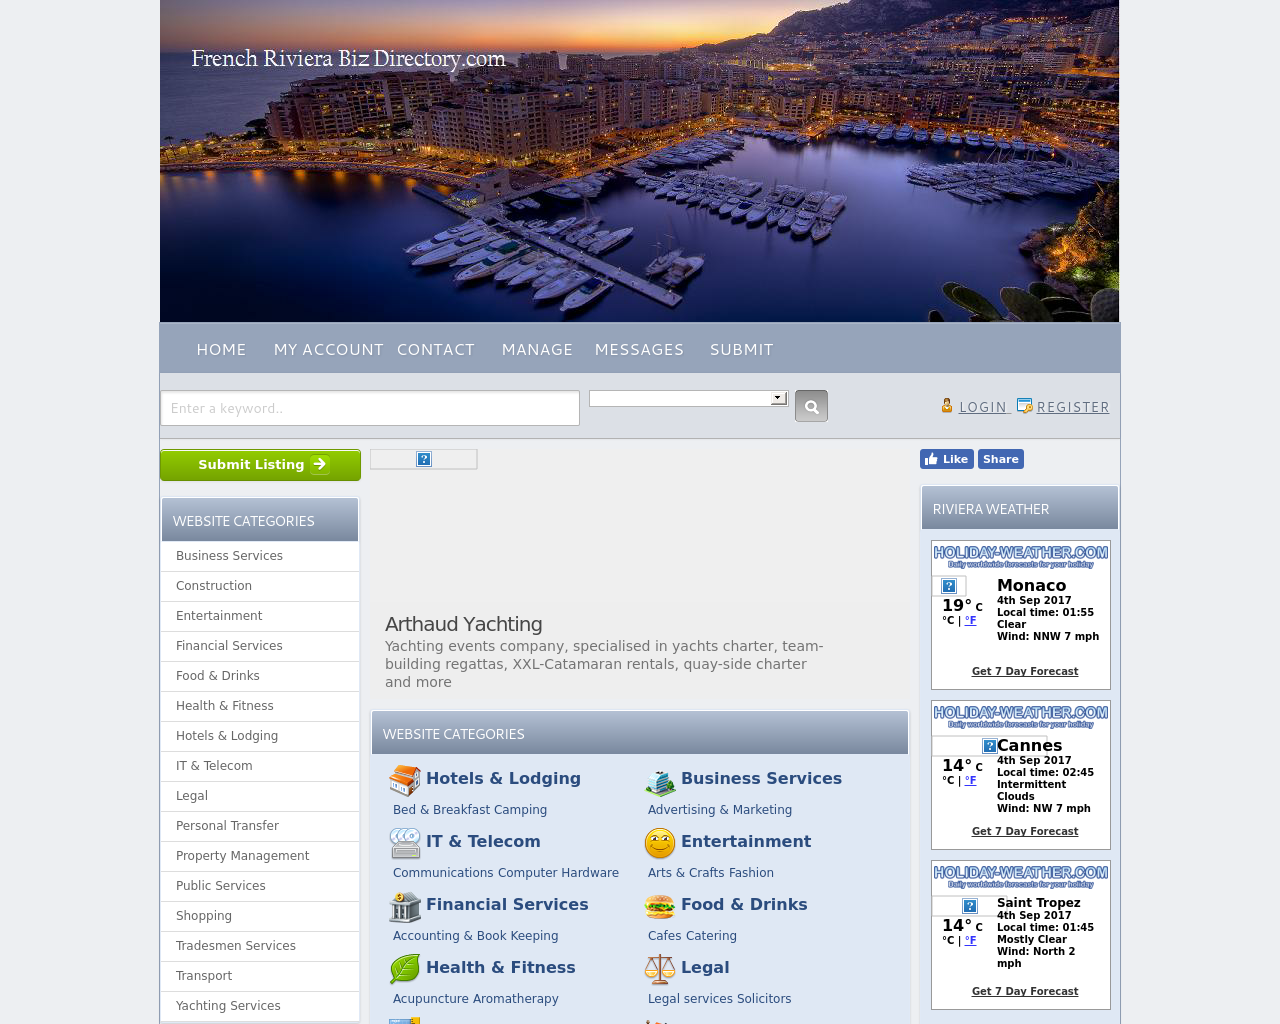 French-Riviera-Biz-Directory.com-Advertising-Reviews-Pricing